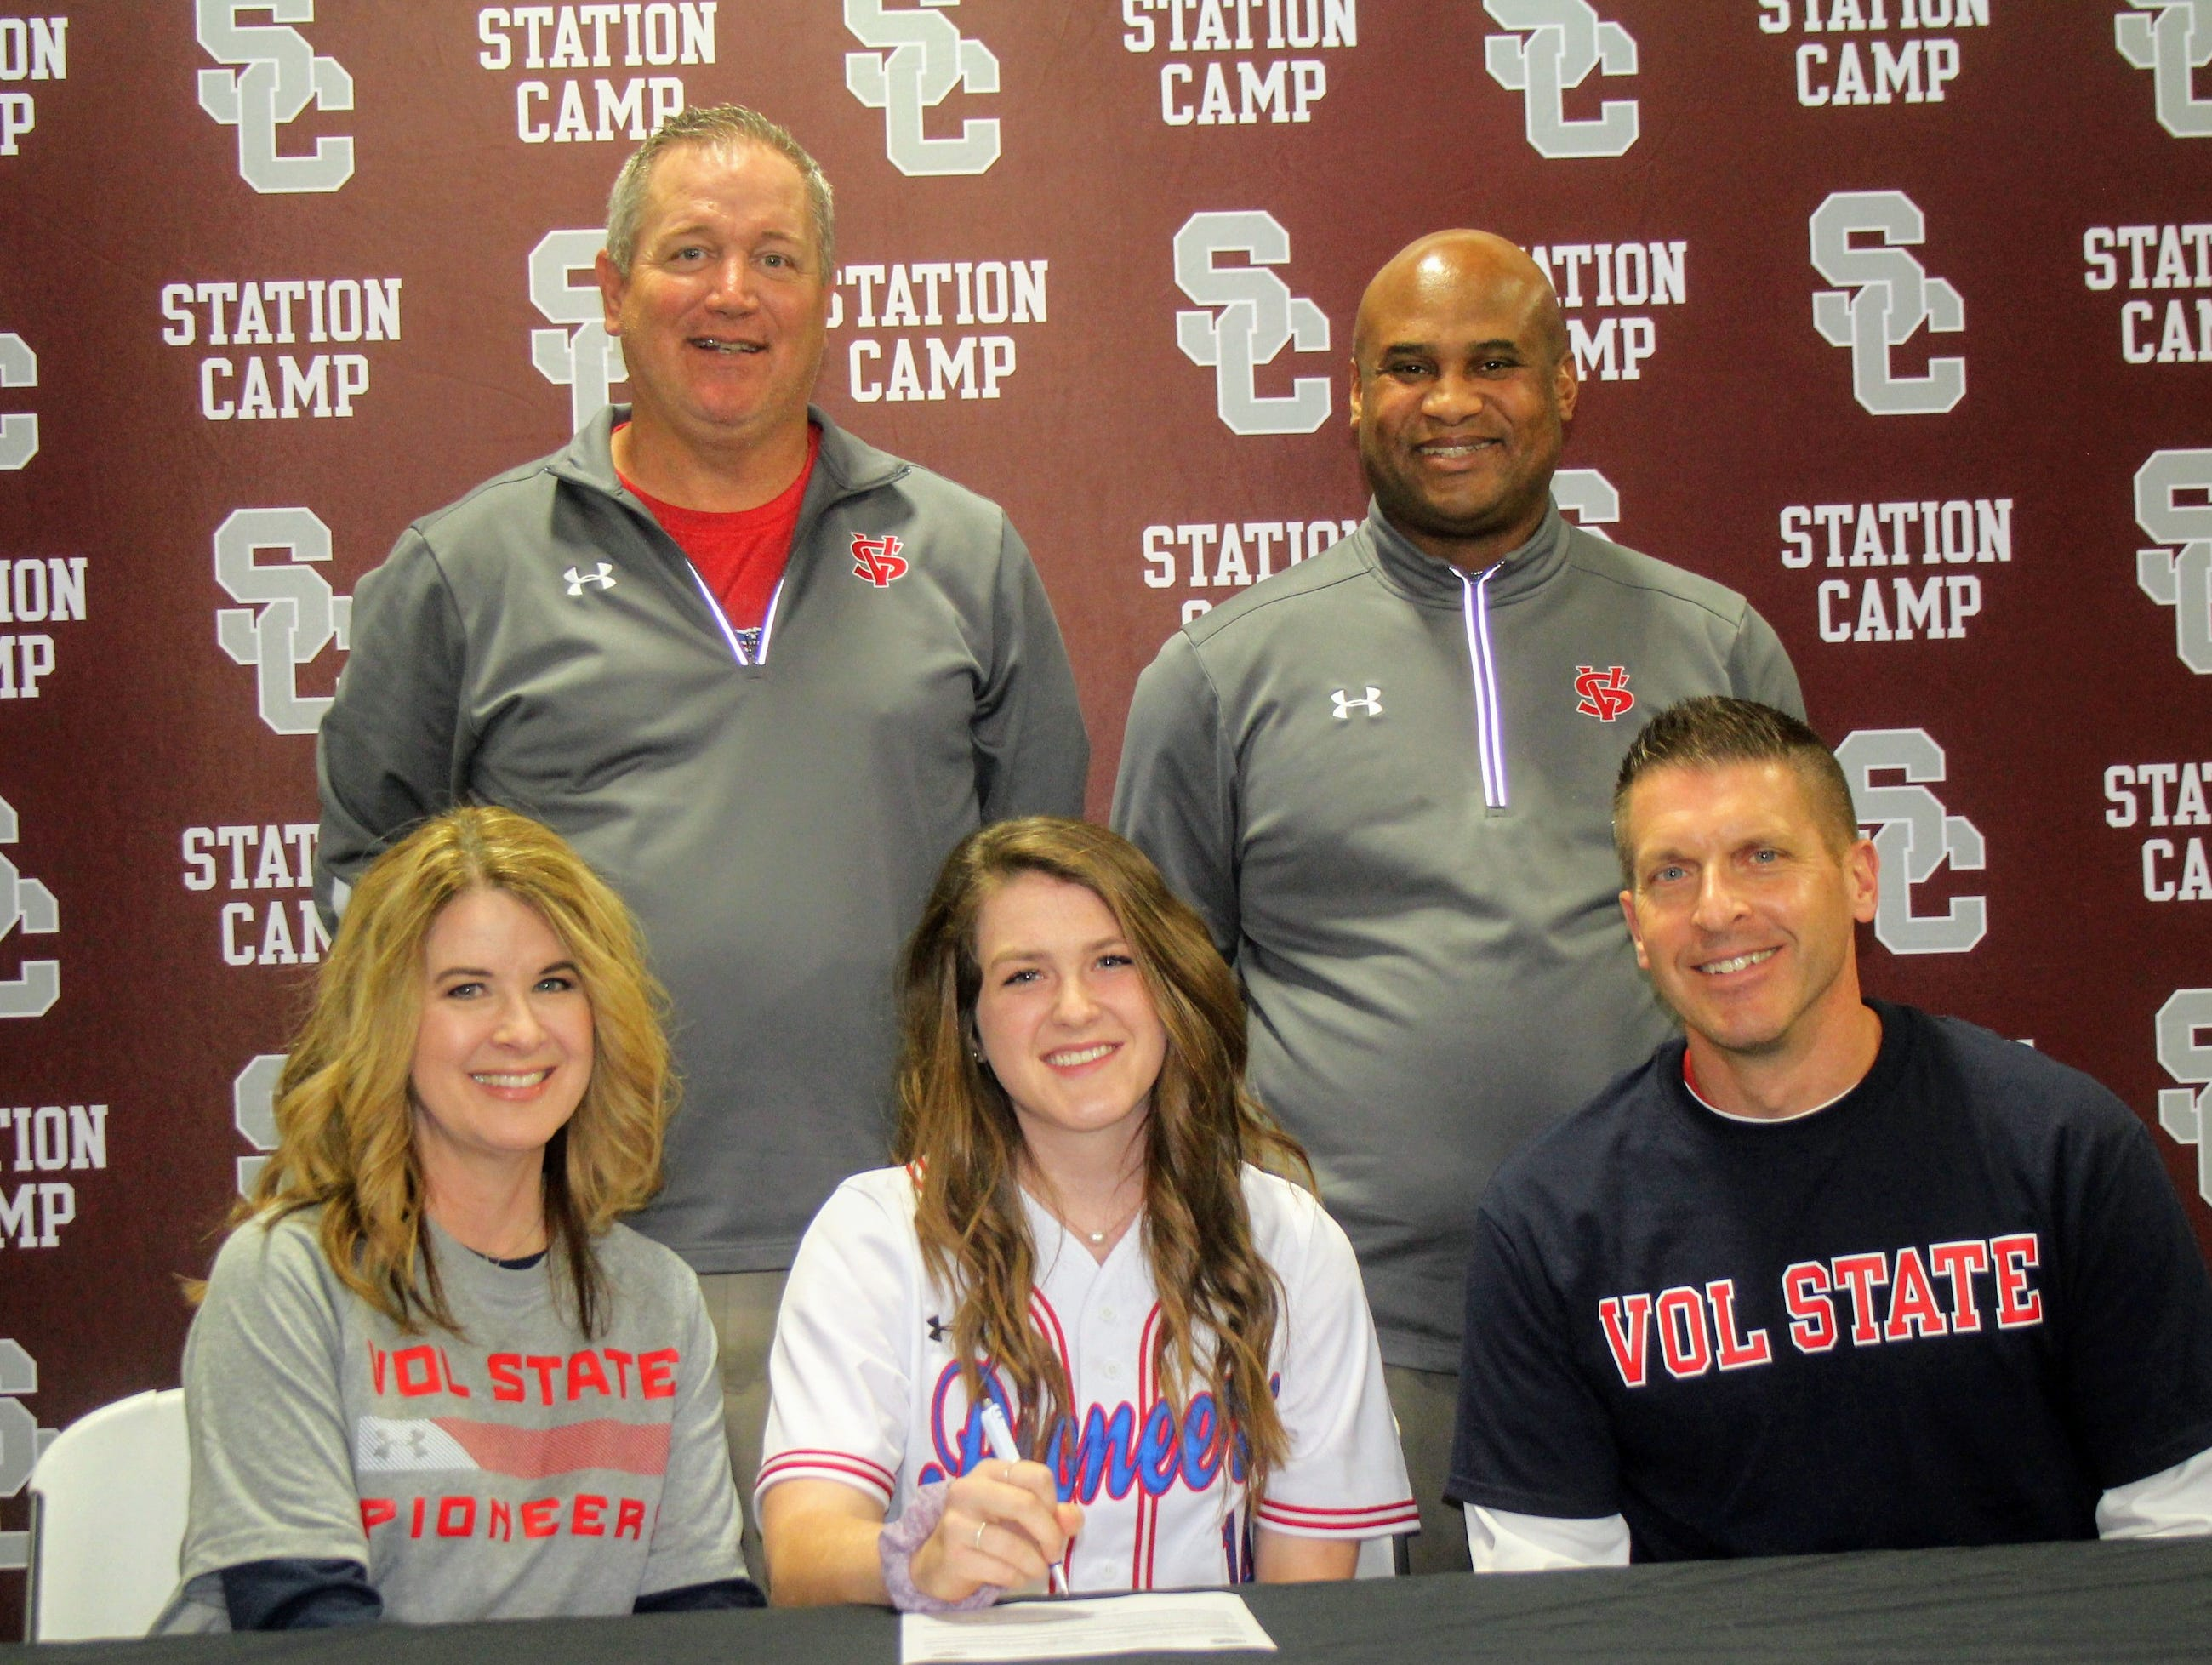 Station Camp's Addie Lange signed last week with Volunteer State. She is currently a senior and starting catcher.